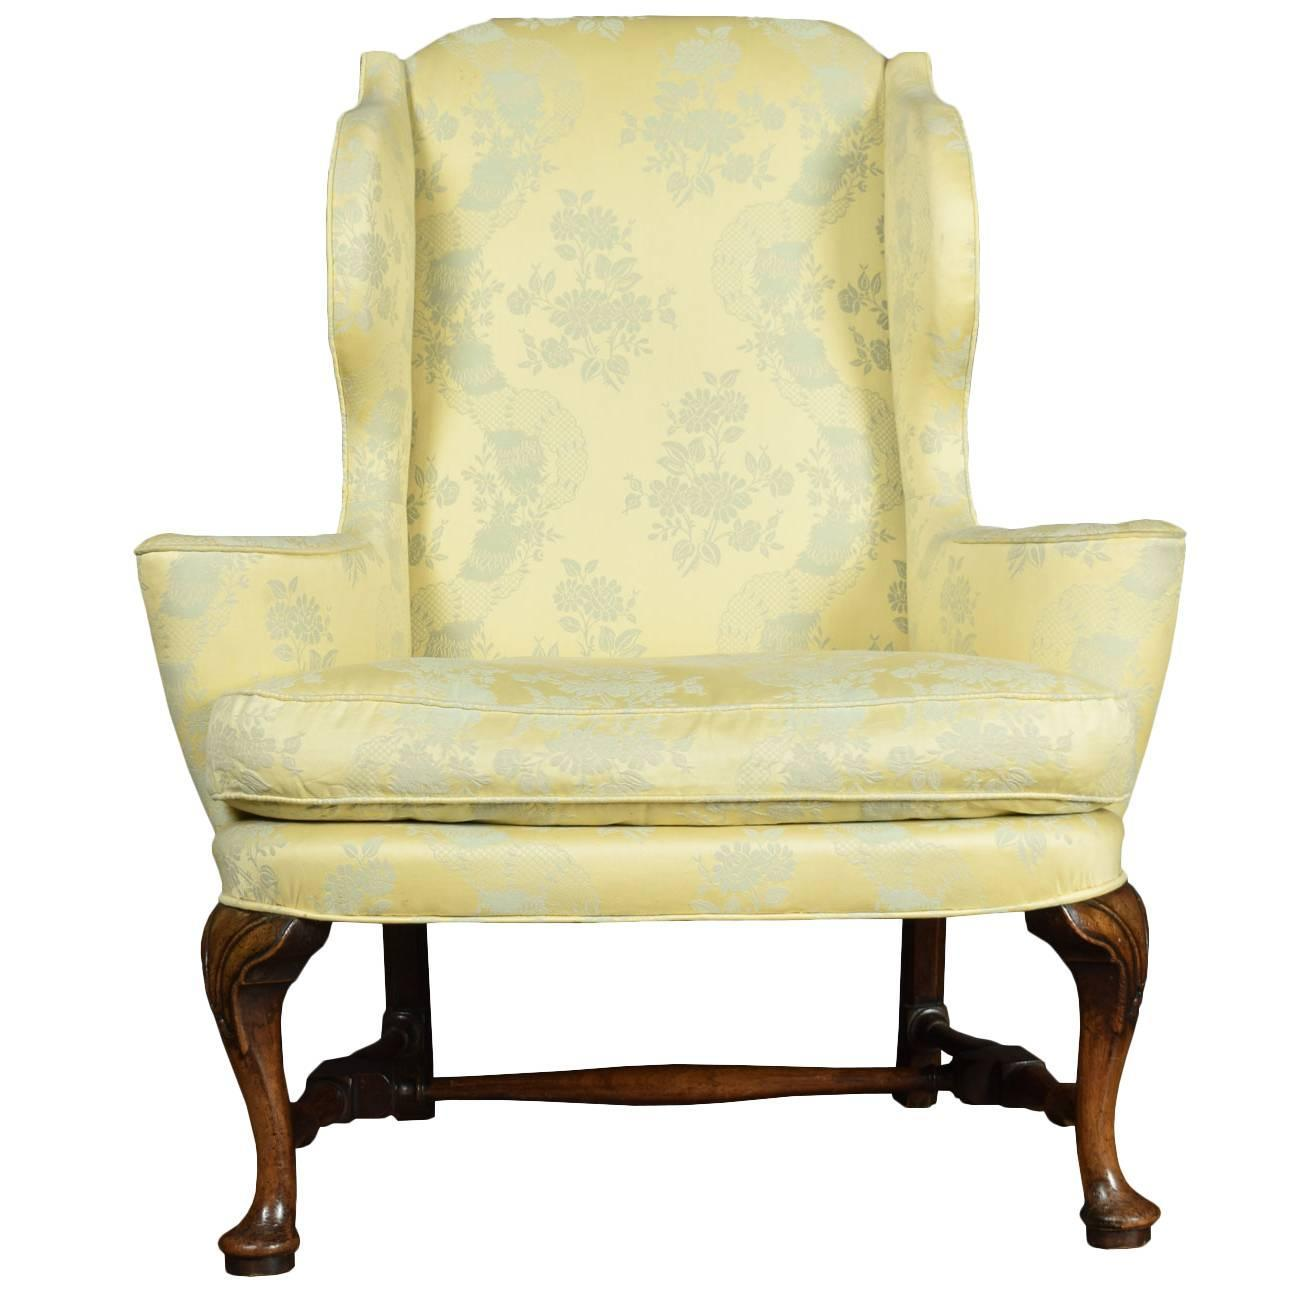 queen anne wing chair recliner long dining covers australia style armchair for sale at 1stdibs